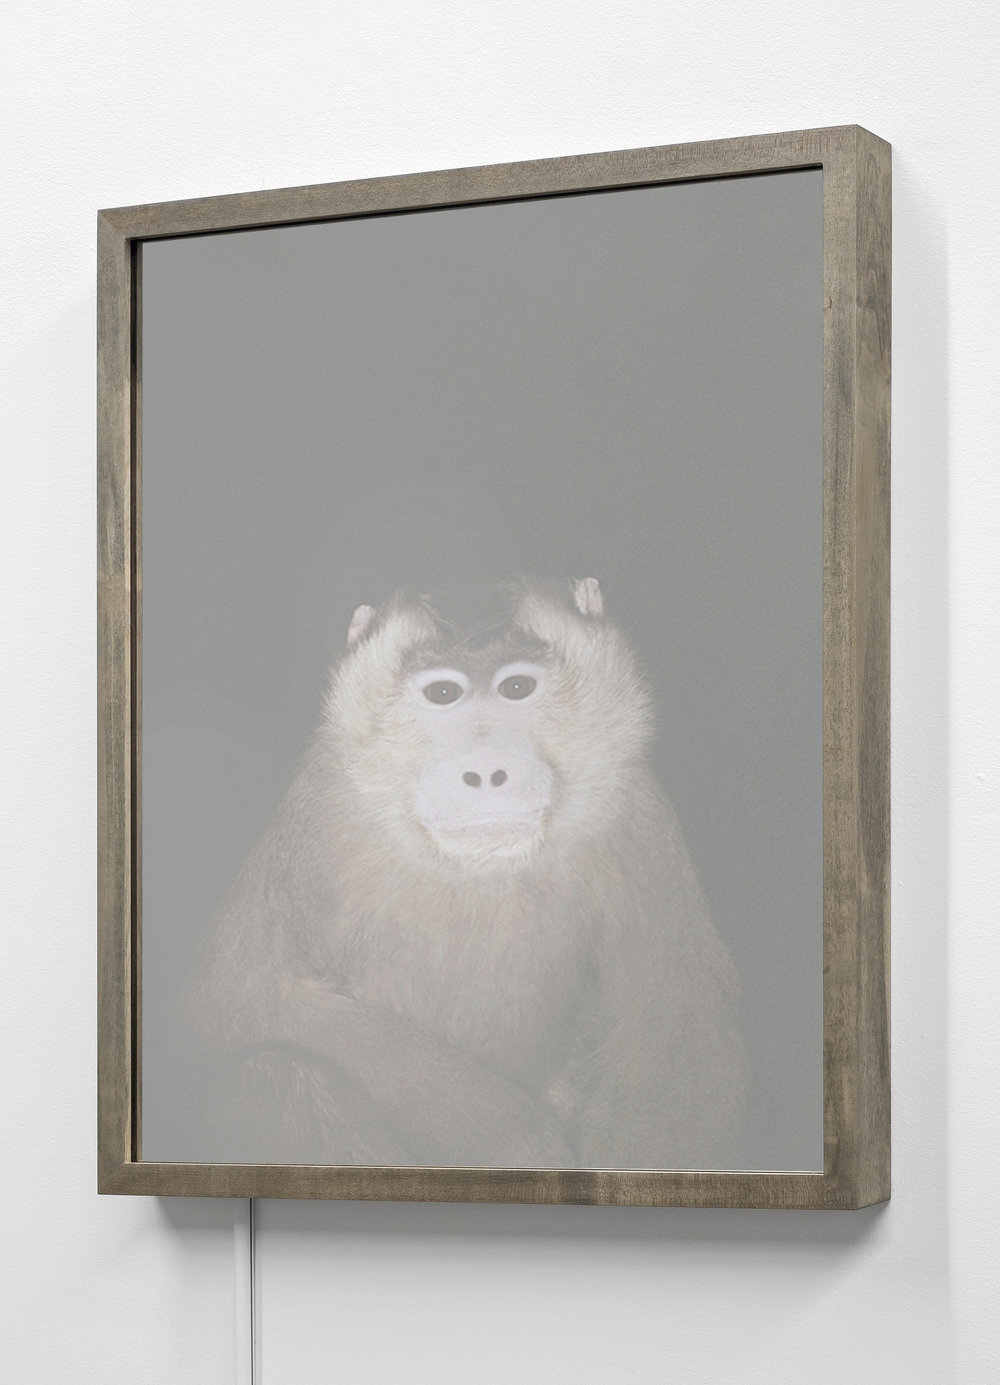 CHRISTINA SEELY  Pig-tailed Macaque,  Macaca nemestrina - Vulnerable Kinetic Mirrored Lightbox  Available sizes: 30 x 24 in | Edition of 3 + 1AP 20 x 16 in | Edition of 3 + 1AP